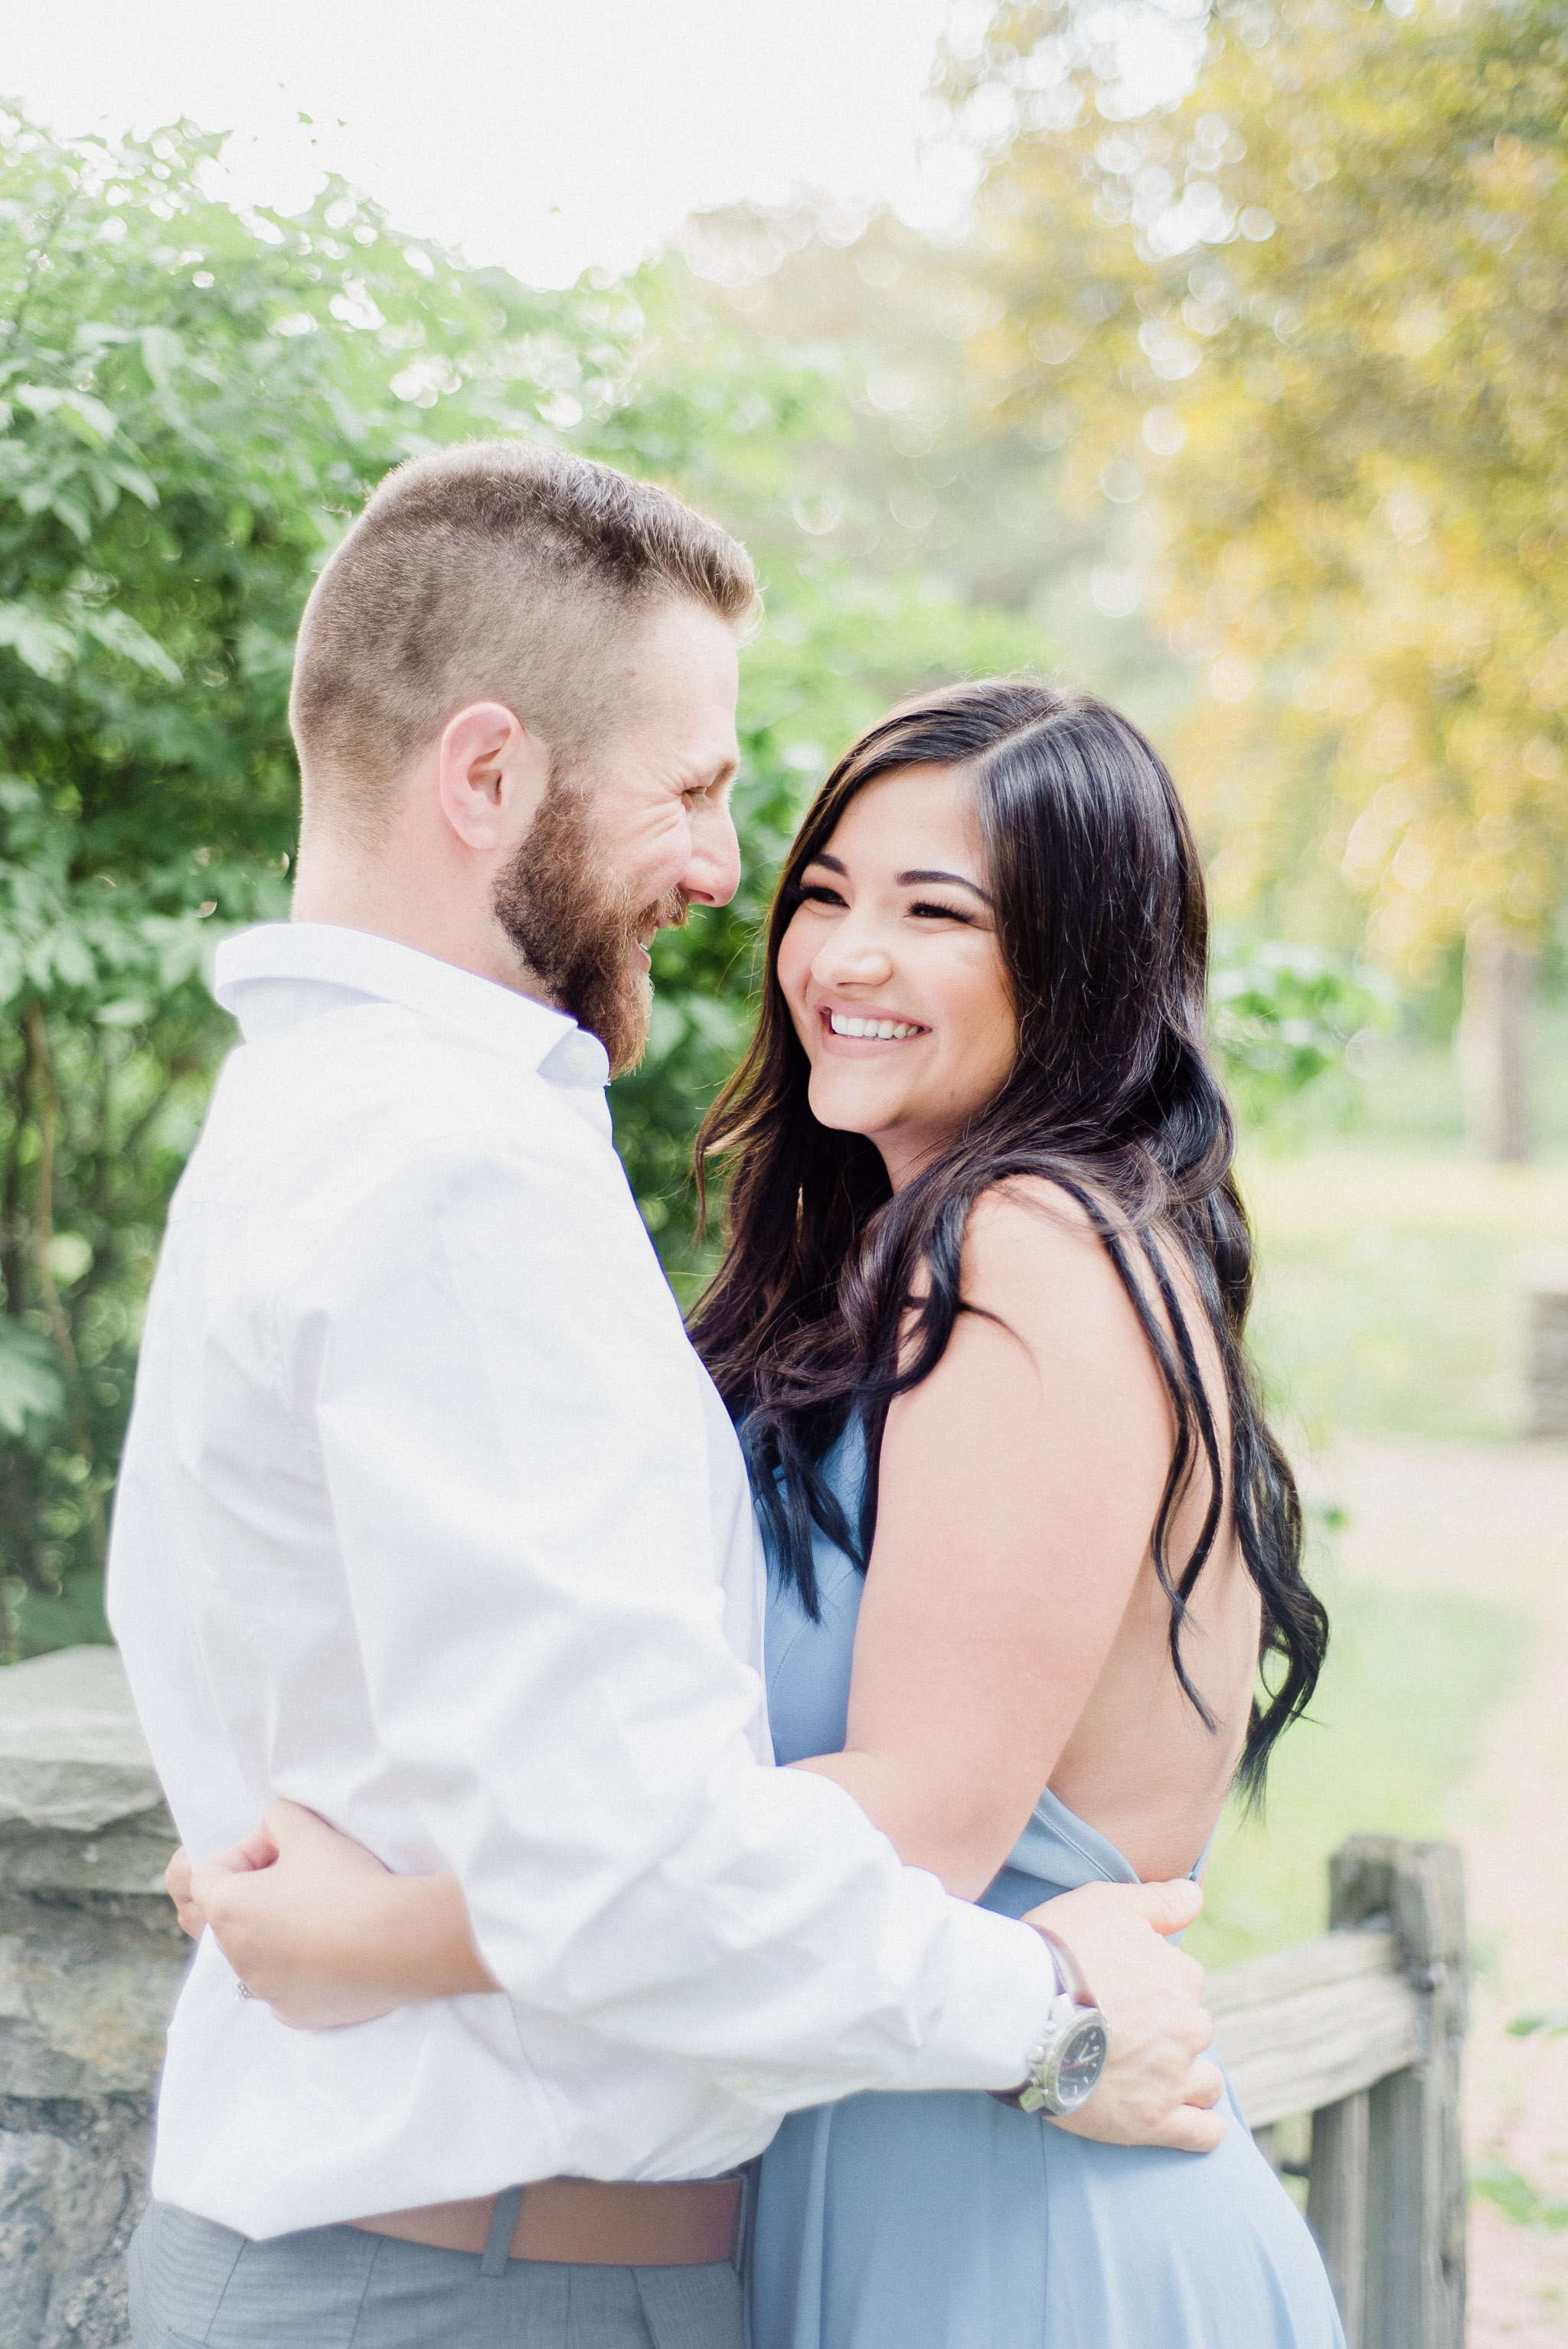 Georgetown, Engagement Session by Jenn Kavanagh Photography